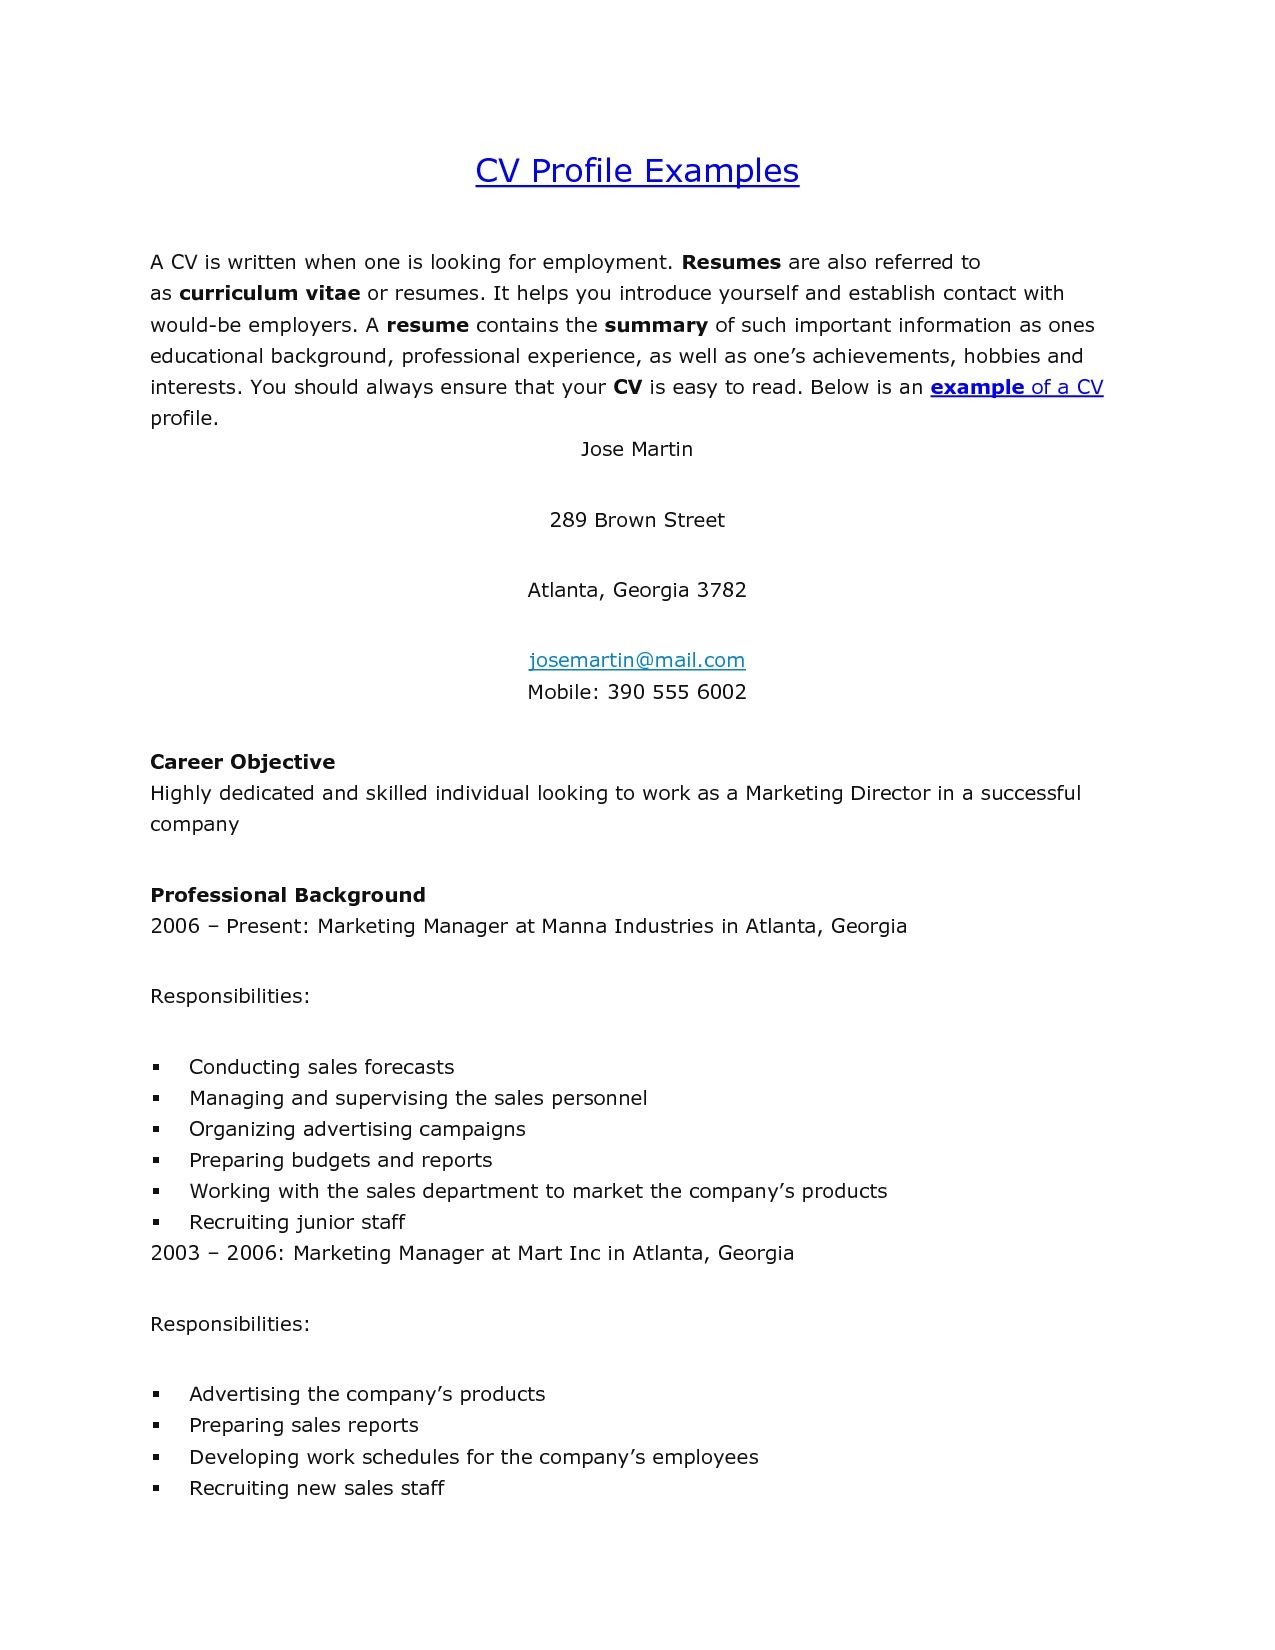 Resume Professional Profile Examples Sample Experience Chartered